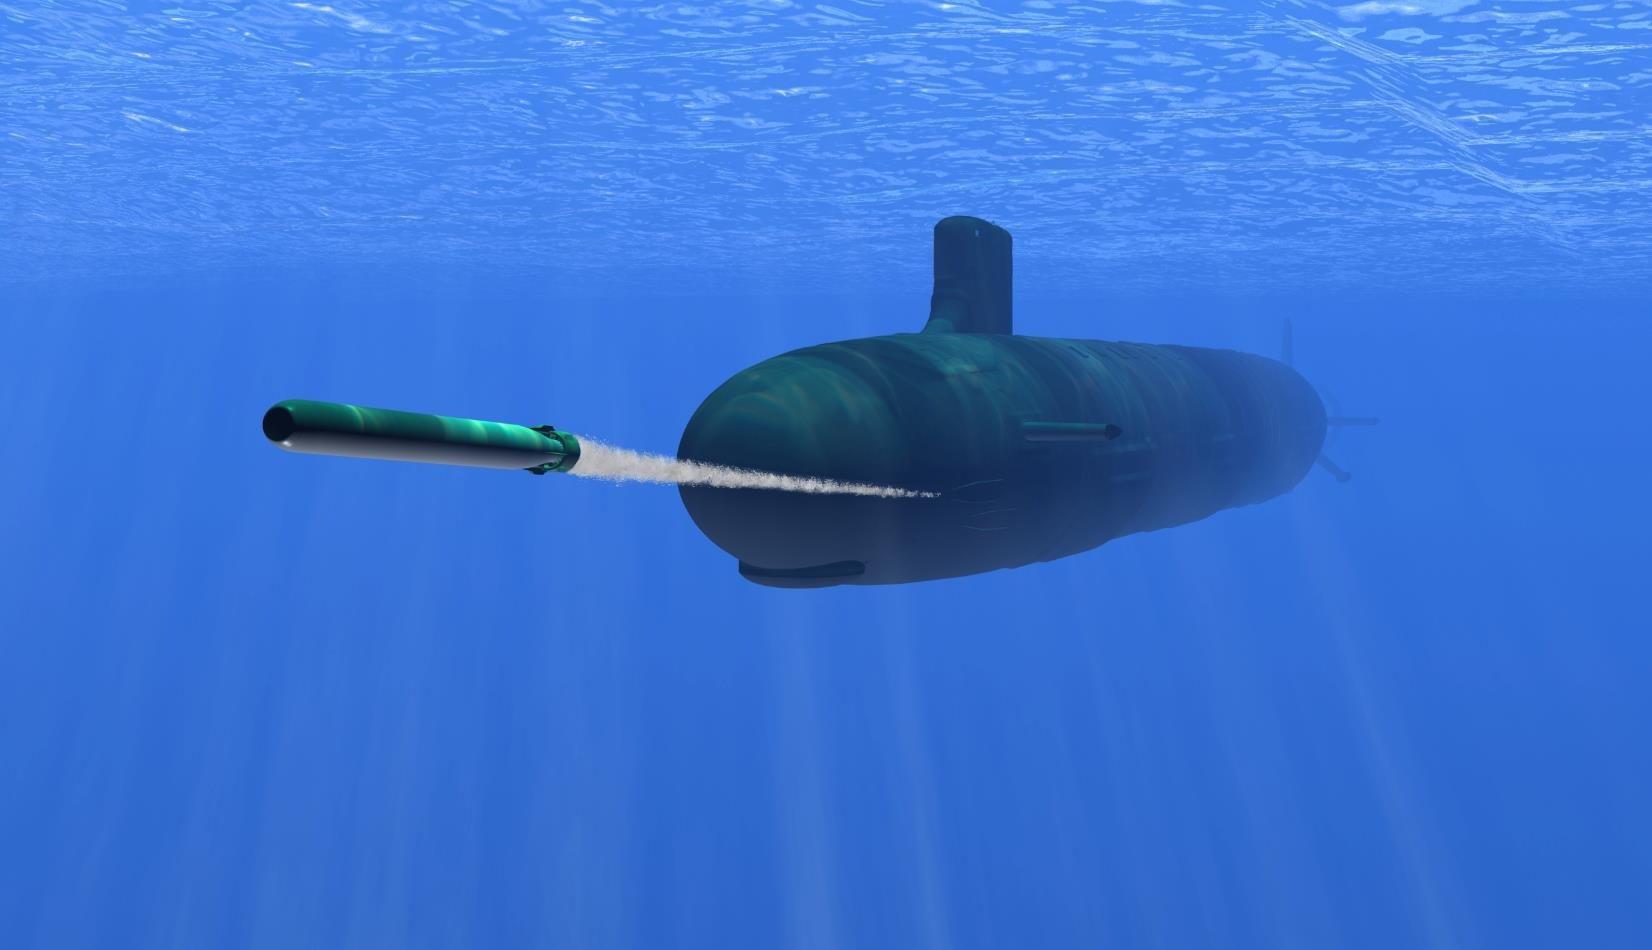 Navy Defends Nuclear-Armed Columbia-Class Submarine Technology ...